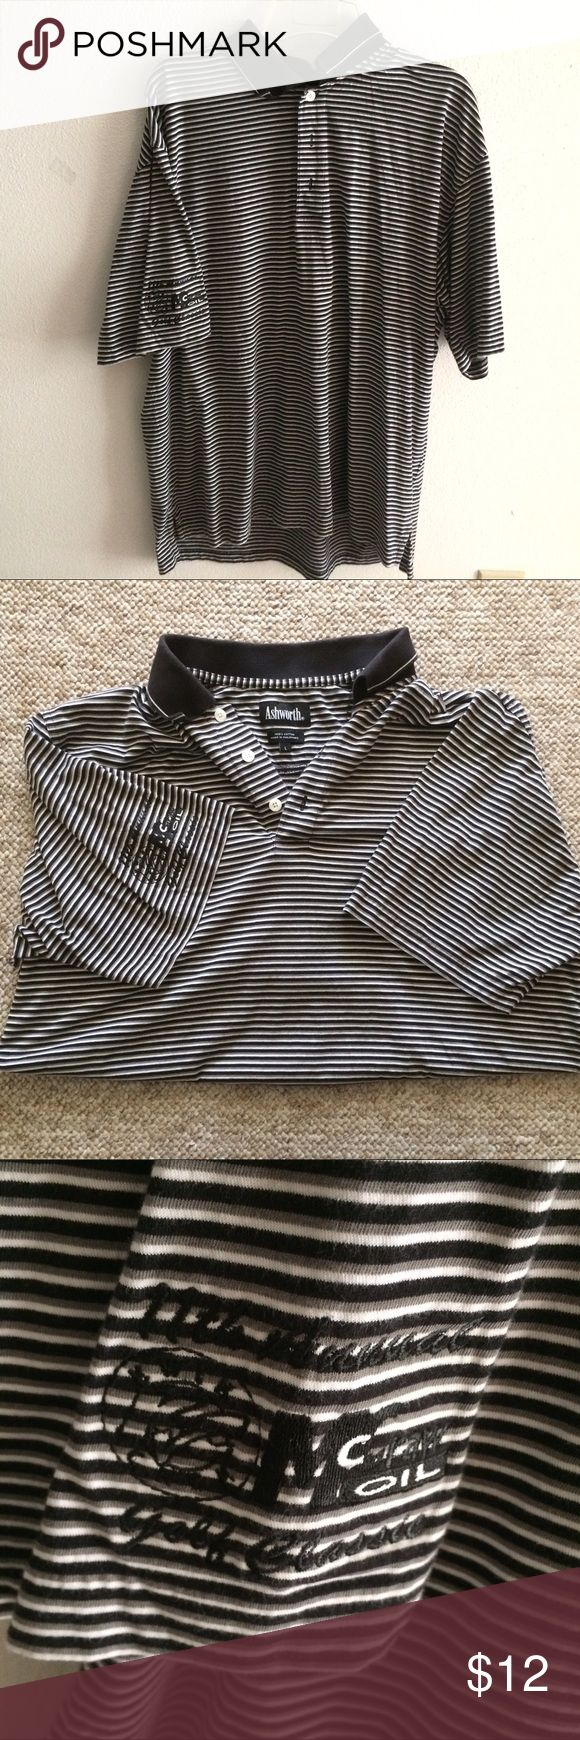 """100% Cotton """"Ashworth"""" striped Polo shirt Perfect condition causal polo shirt. Black and white stripes & black collar. Buttons to the neck. 100% Cotton. Ashworth Shirts Polos"""